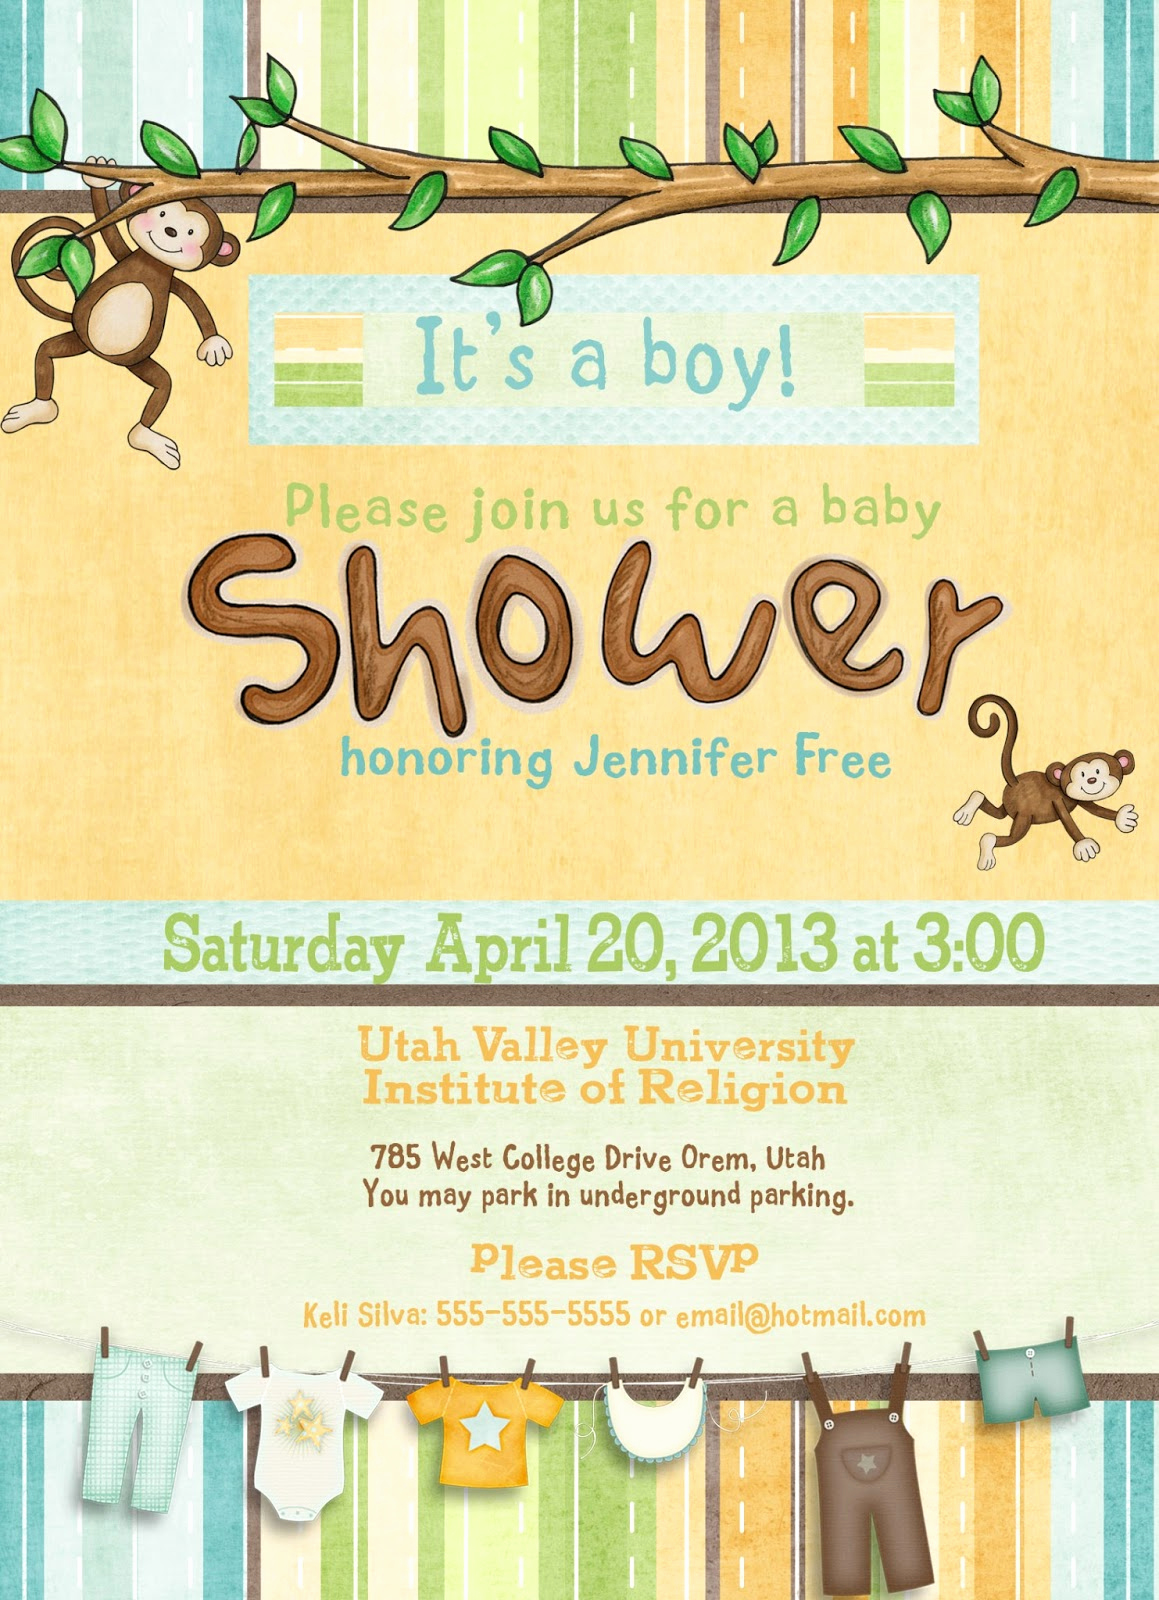 Baby Shower Invitation Clip Art Inspirational Elena Starz Tg Stories Captions A Two Part Story